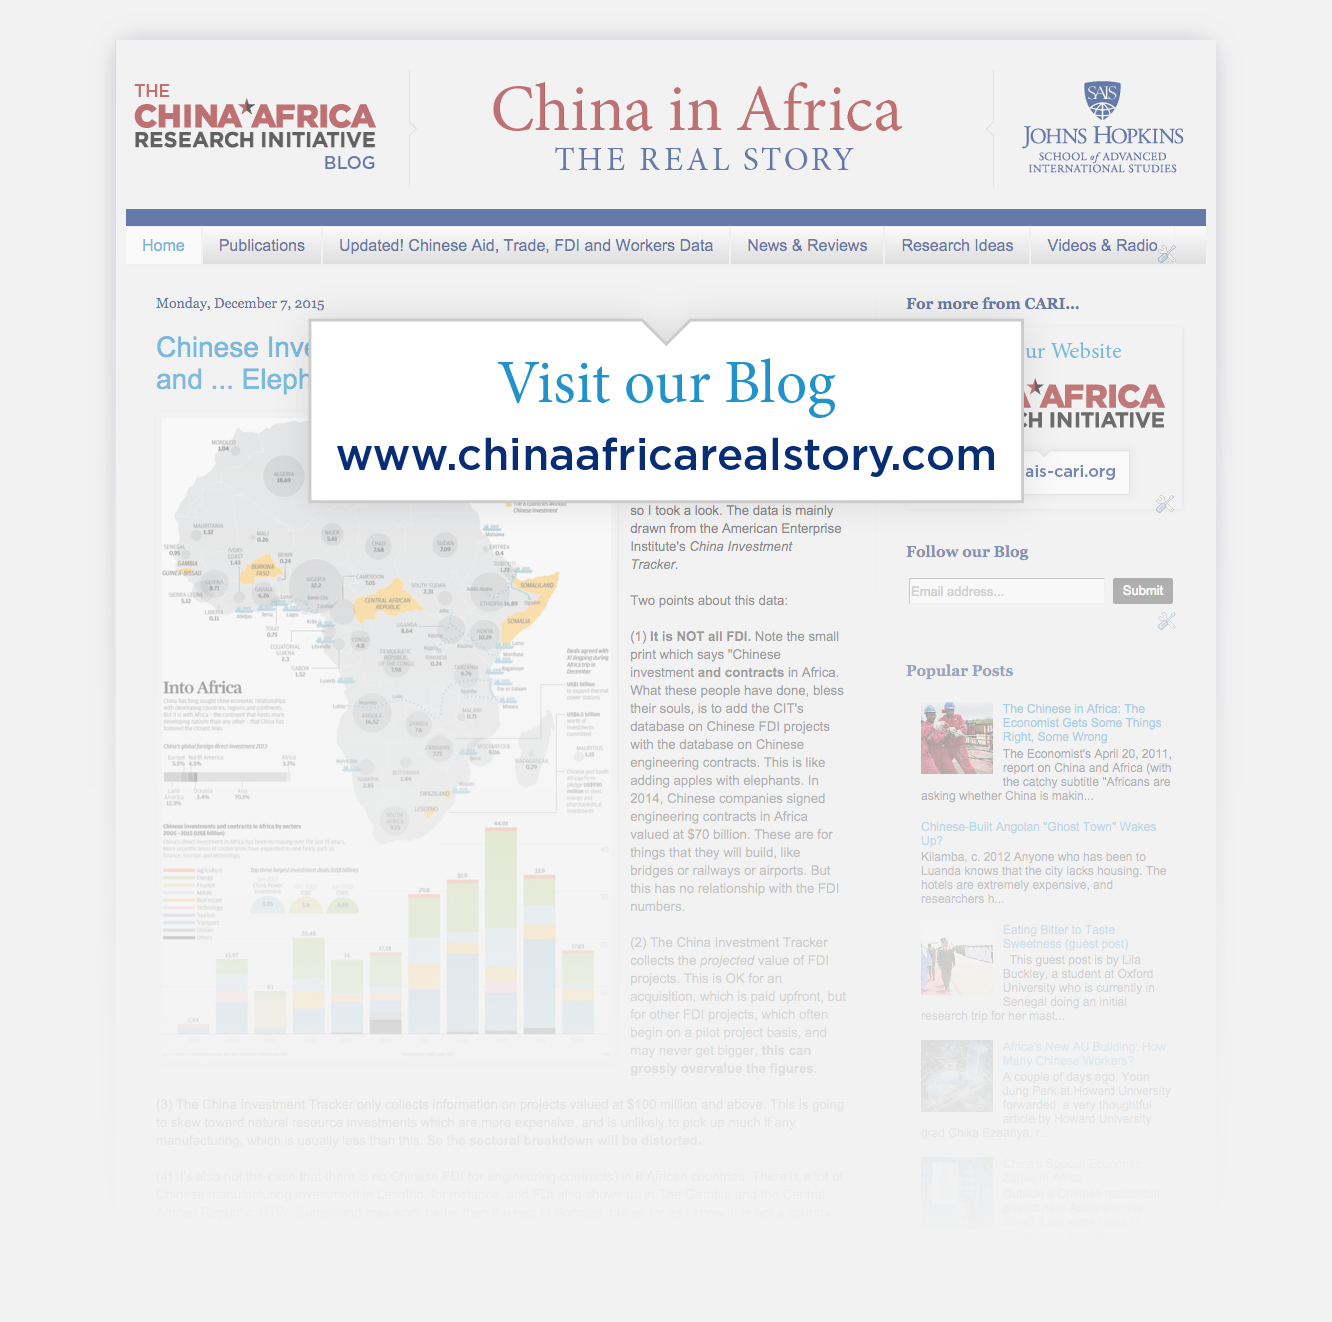 """Link to the CARI Blog, """"China in Africa: The Real Story"""" at www.chinaafricarealstory.com"""